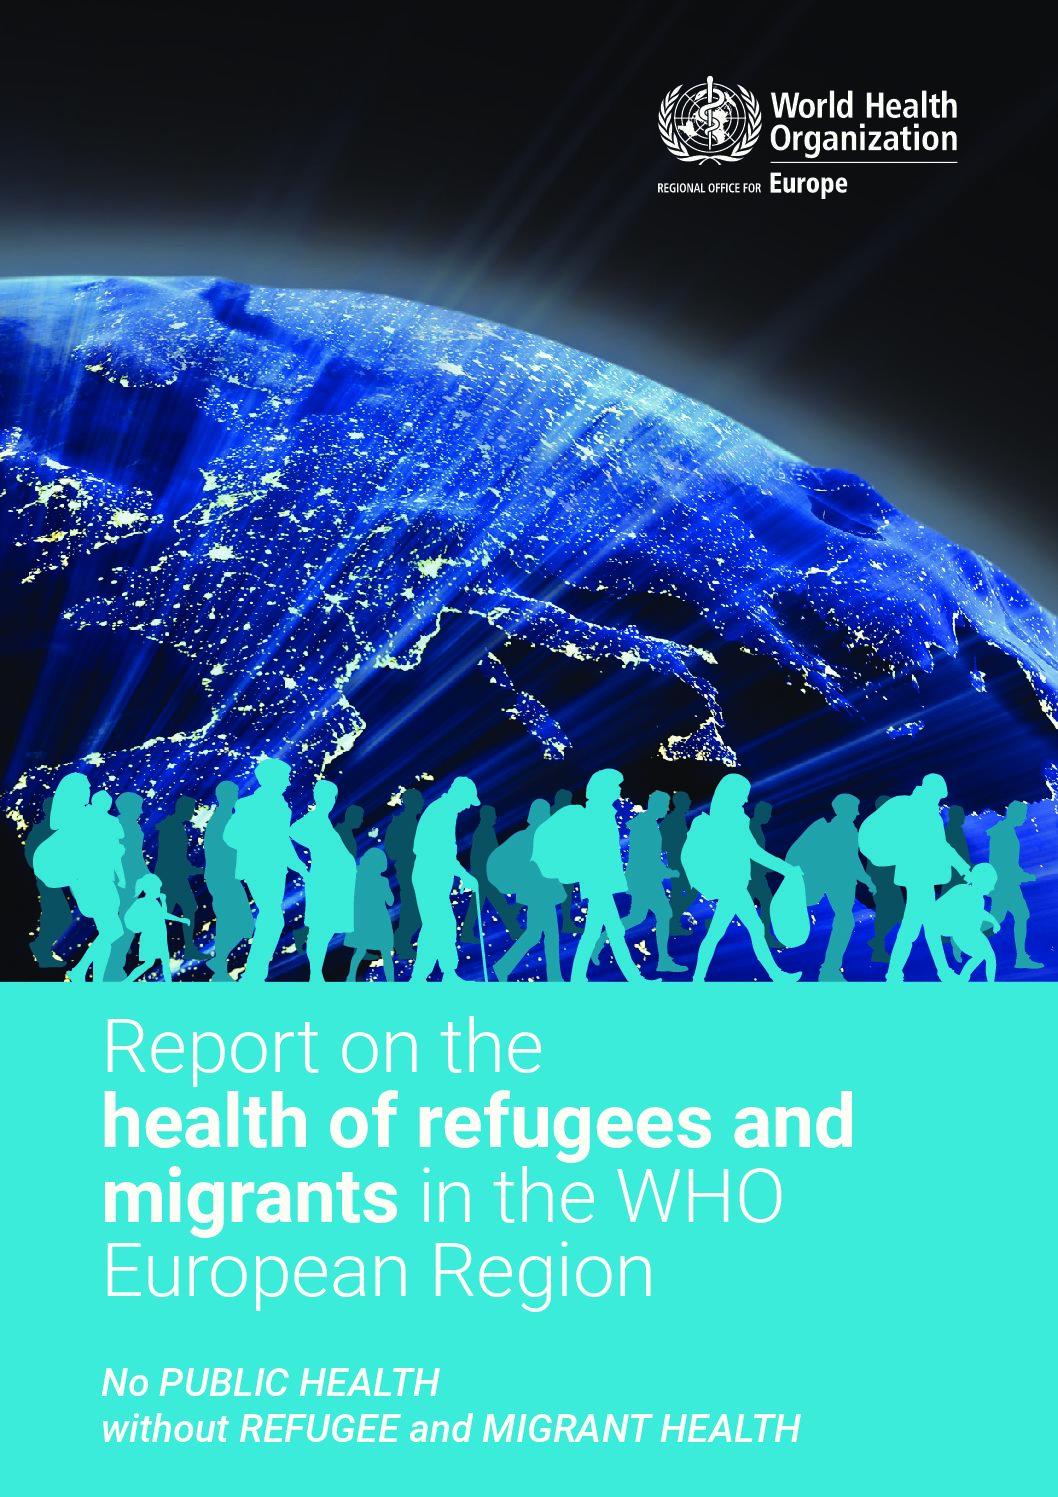 Report on the health of refugees and migrants in the WHO European Region